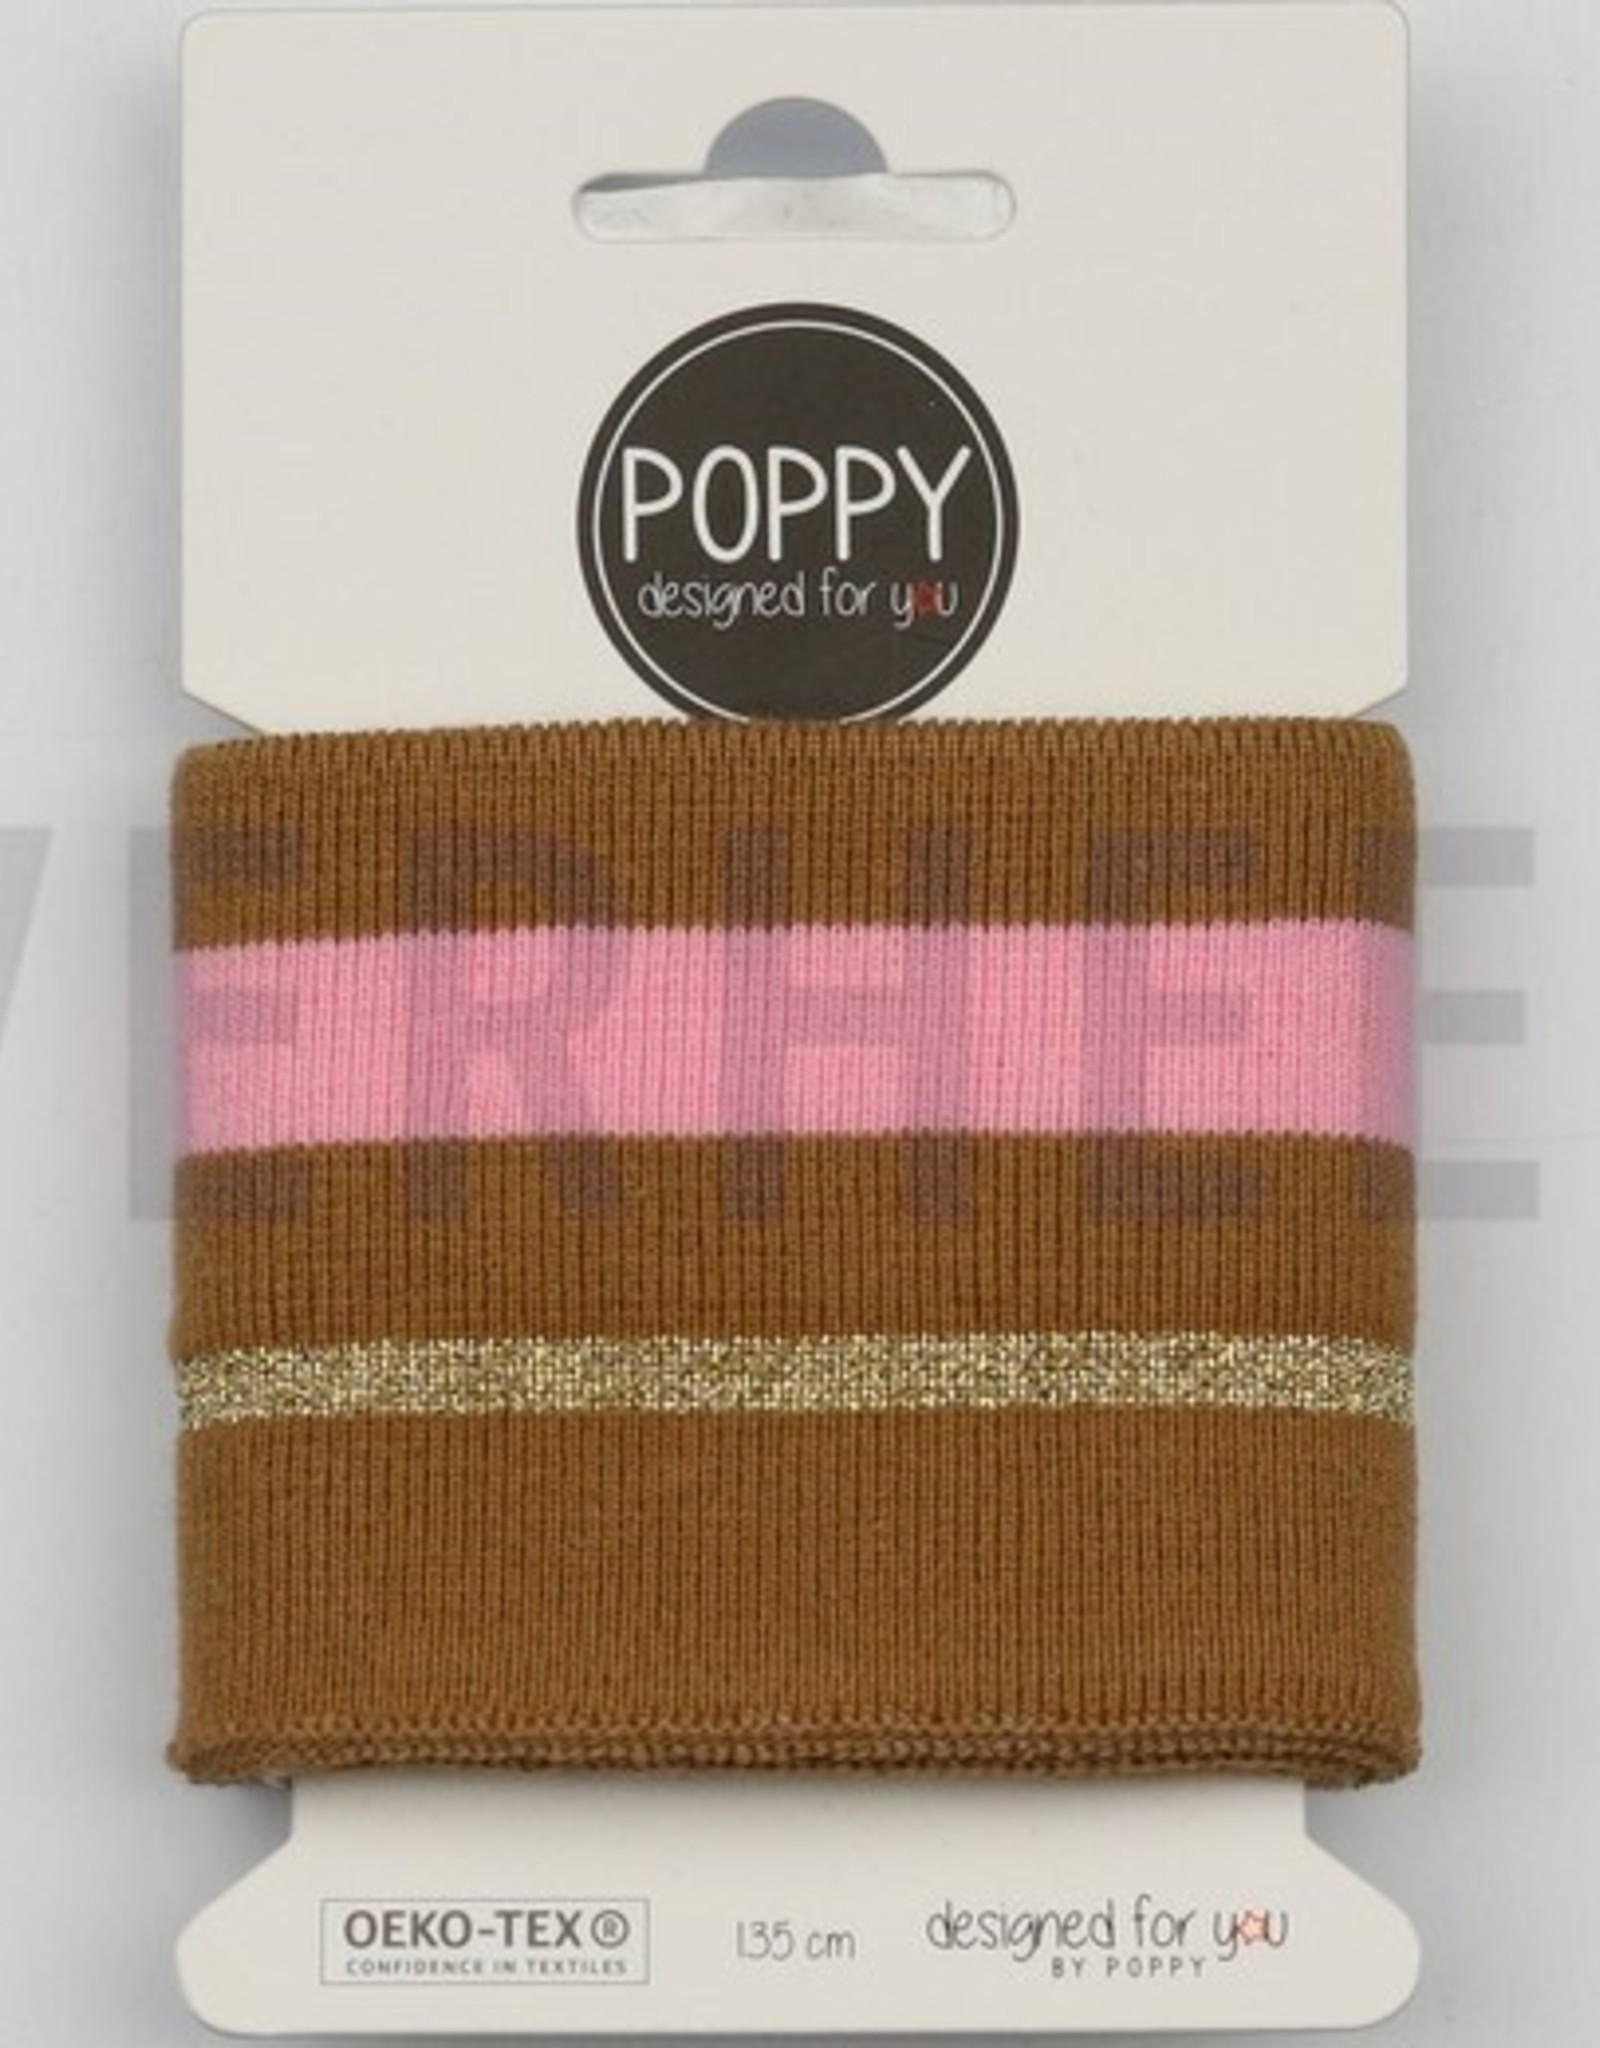 Poppy designed for you Cuff gestreept bruinroest/pink/goud